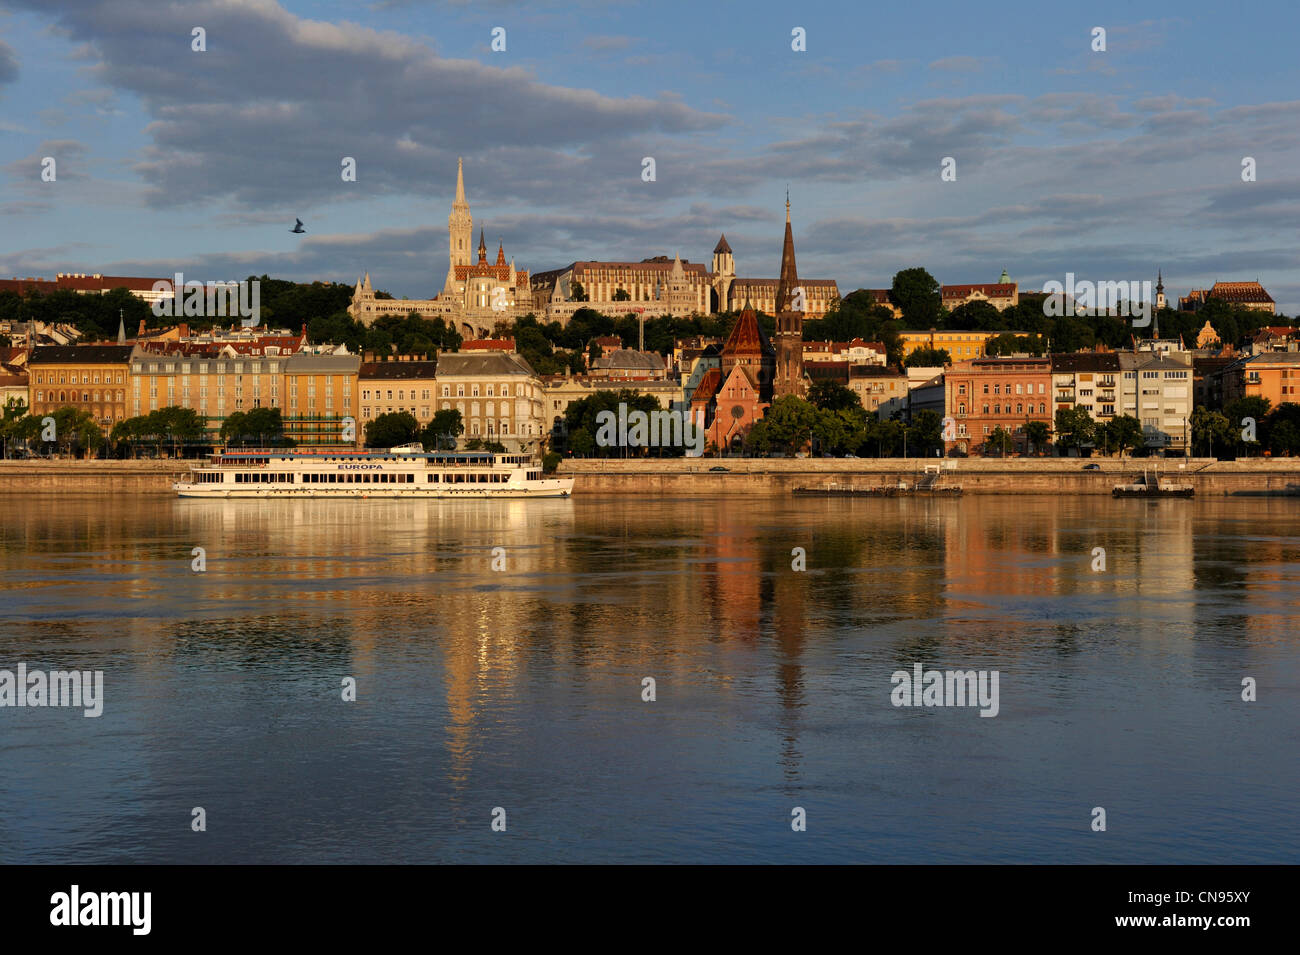 Hungary, Budapest, Saint Mathias church, Fishers' bastion, Castle Hill listed as World Heritage by UNESCO and - Stock Image